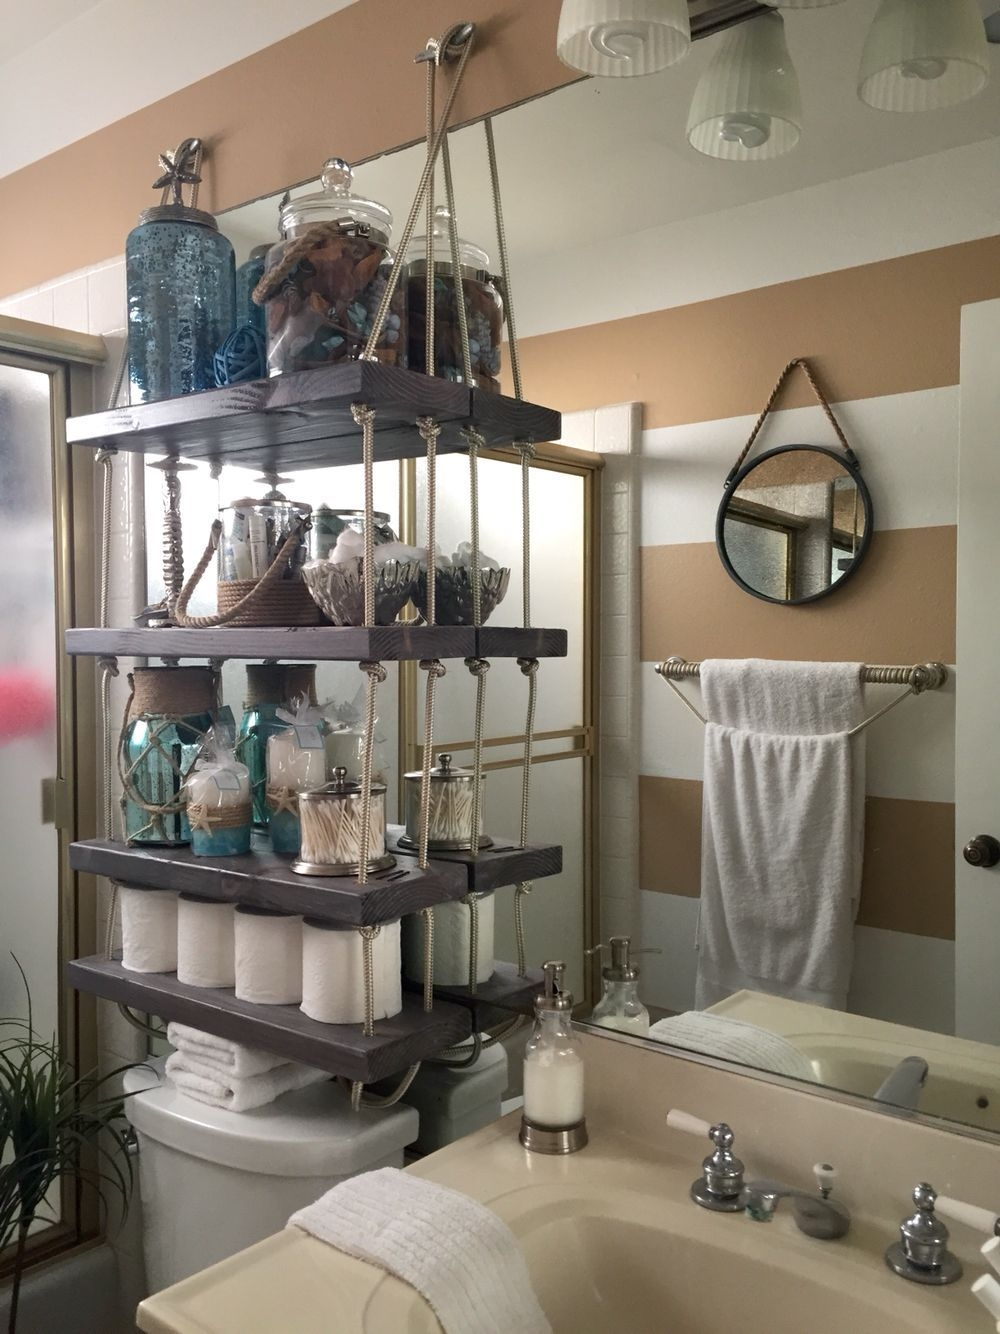 Diy Suspension Rope Shelves For Beach Bathroom  Rope Shelves Home Decor Beach Bathrooms